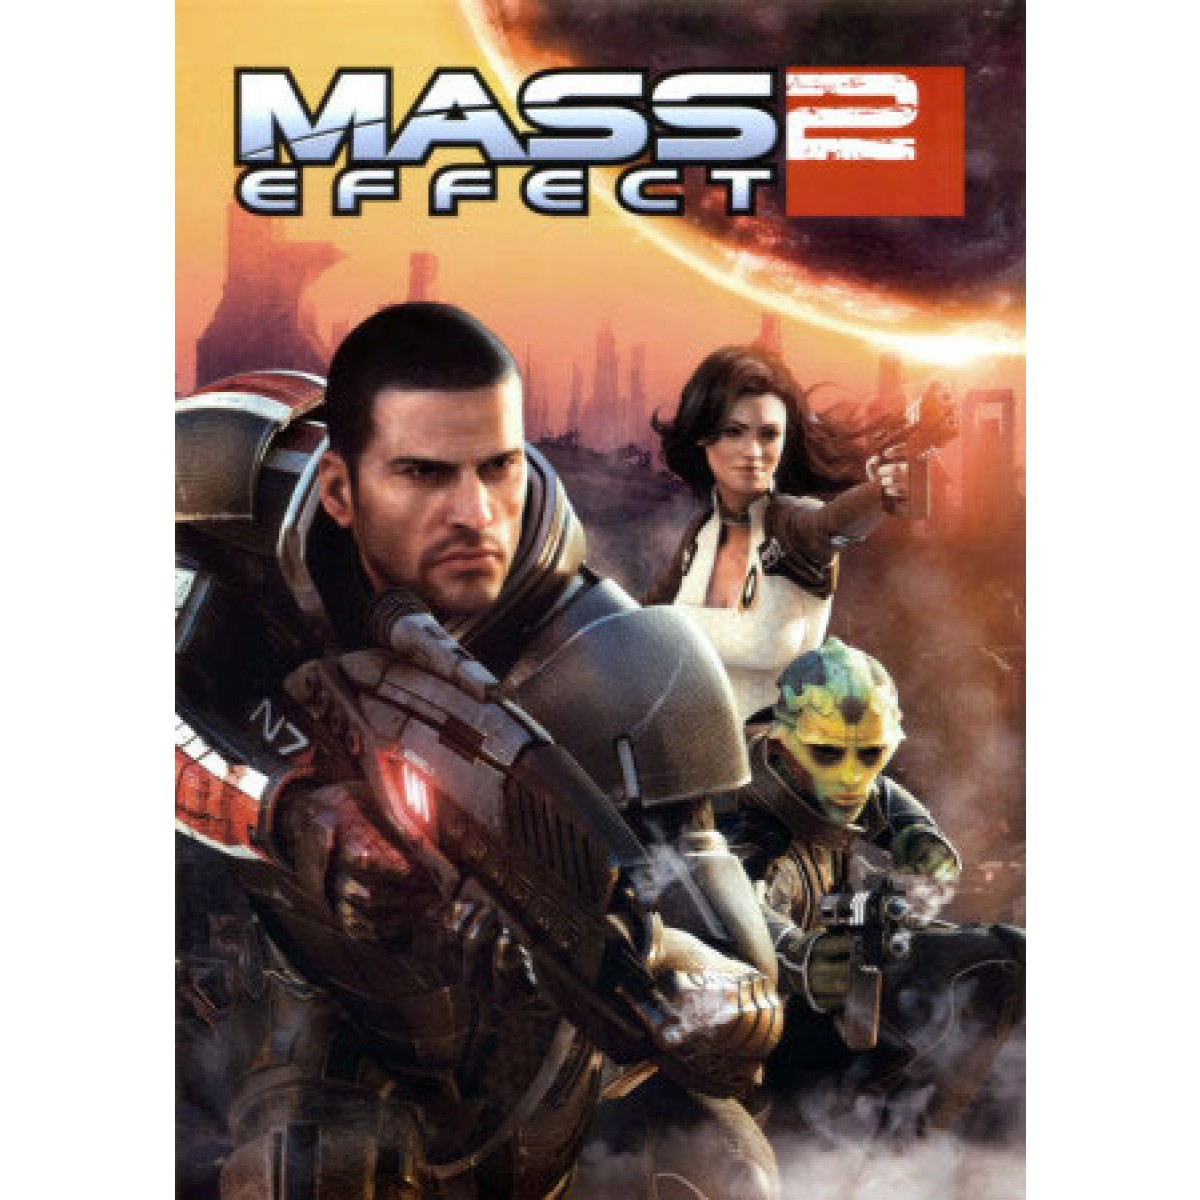 Dead space 2 + Mass Effect 2